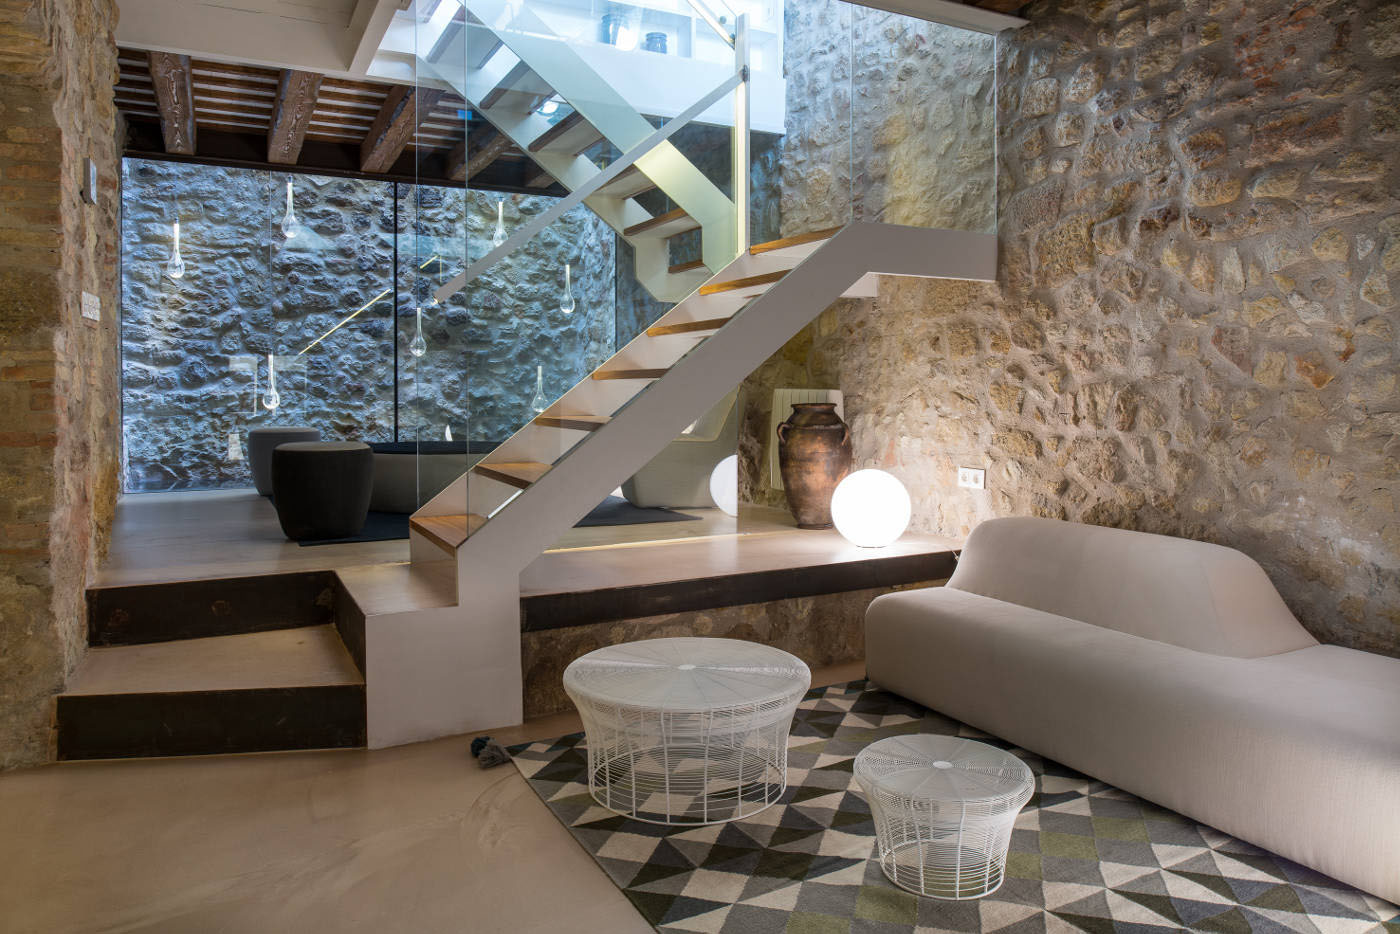 A 19th century stone house on the costa brava transformed - Fotos interiores de casas ...